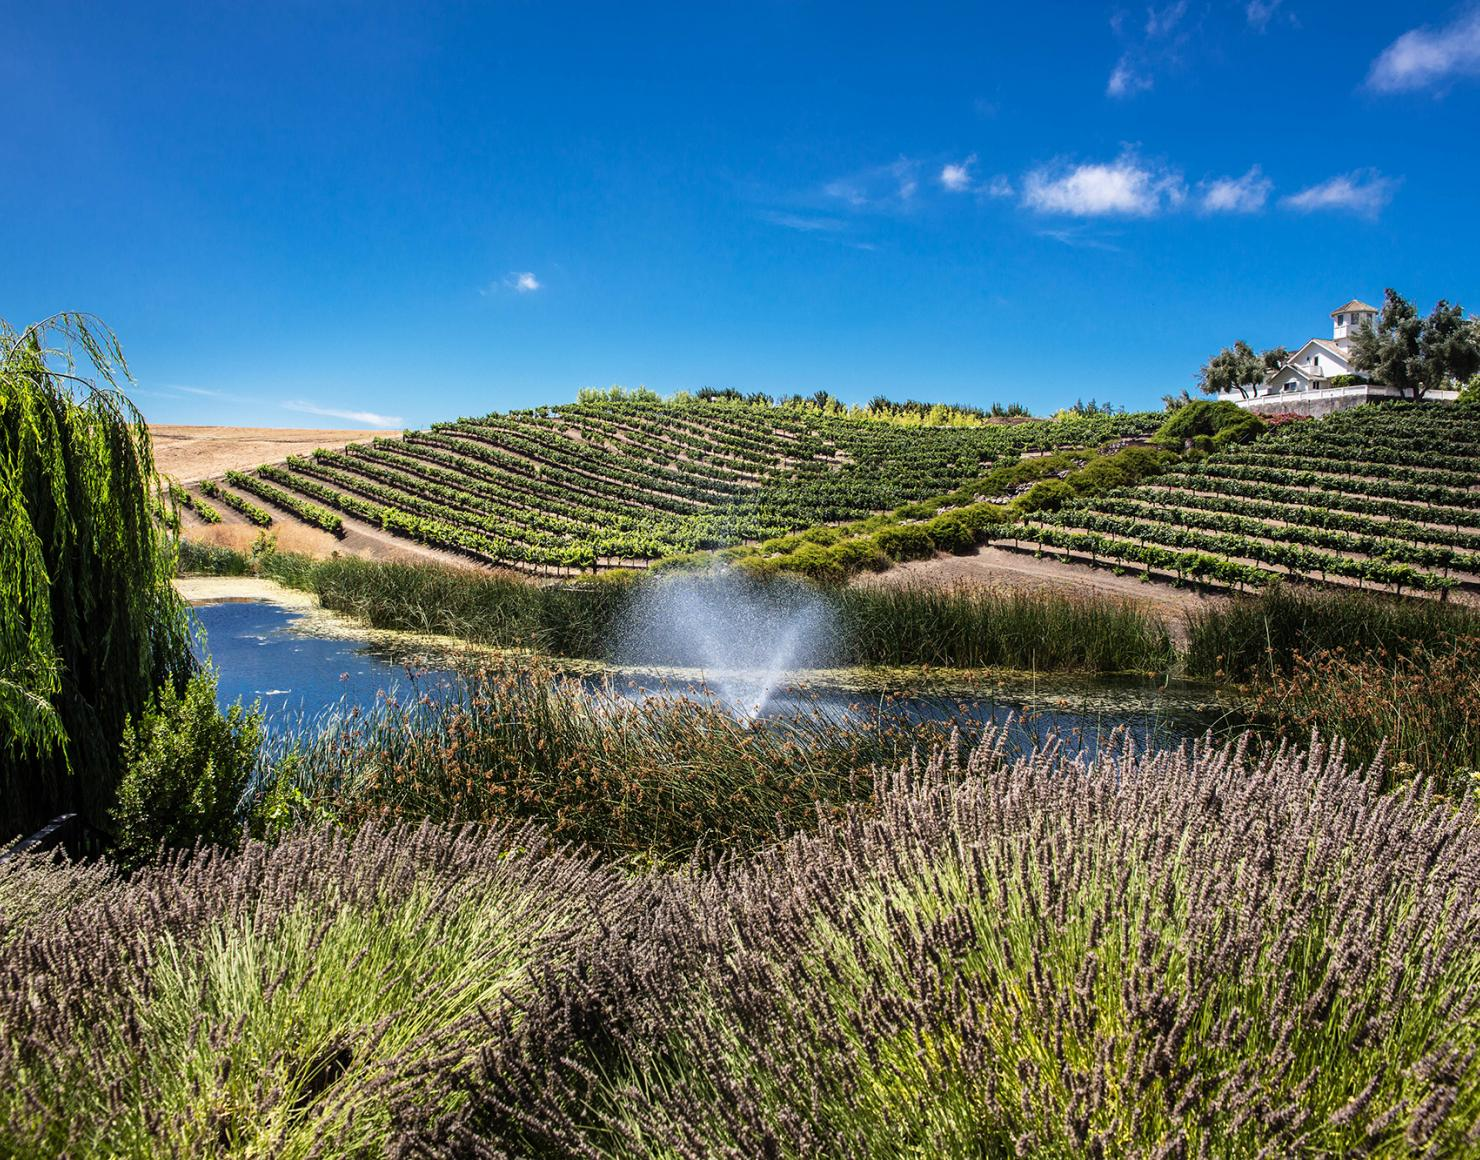 View of Leal Vineyards with fountain in the center point